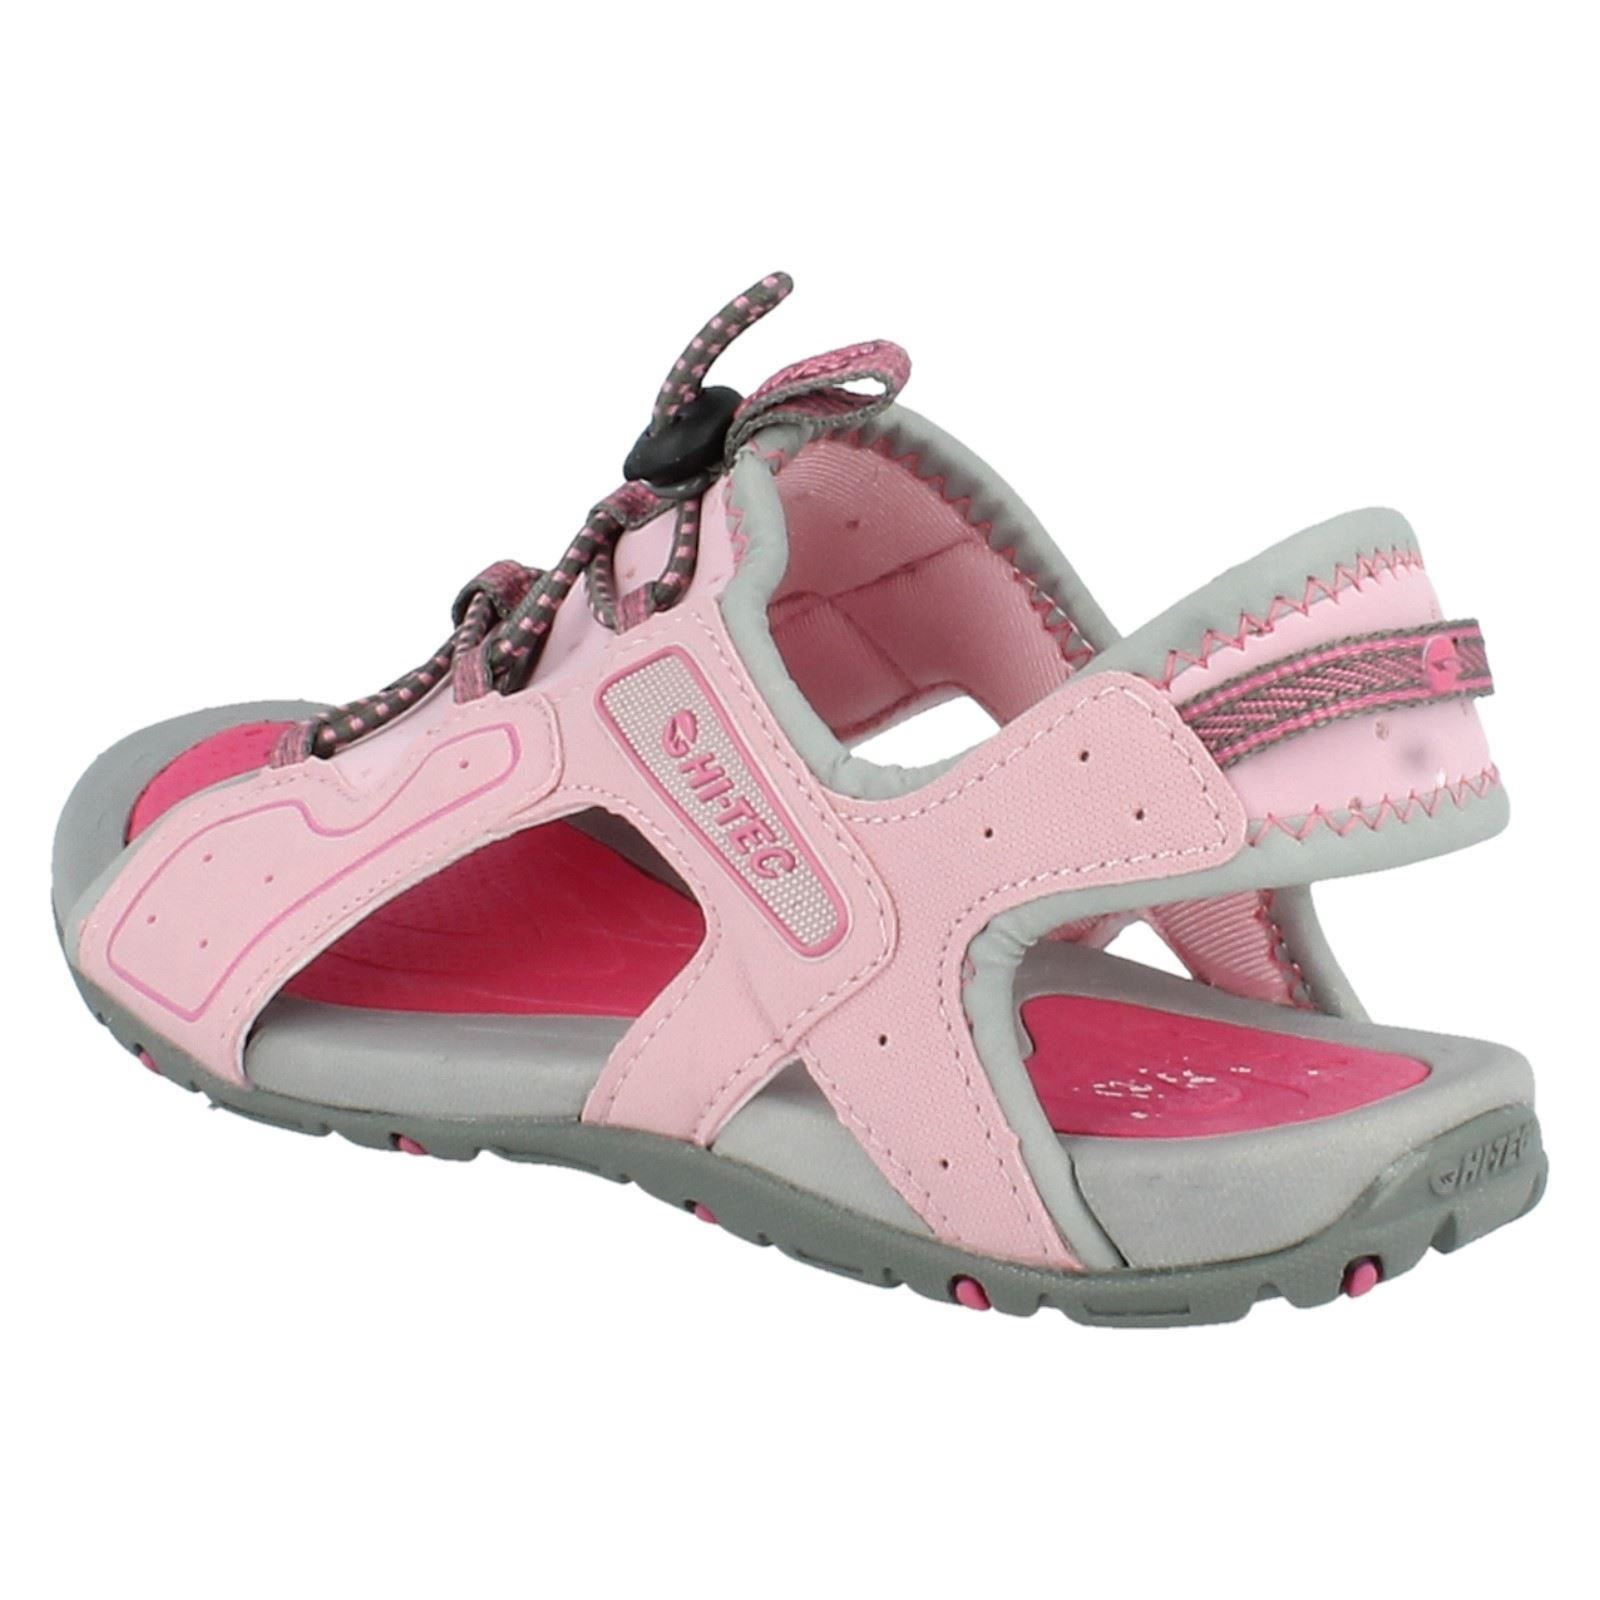 Chicas Hi-tec Sandalias Estilo-turtlebeach Jr